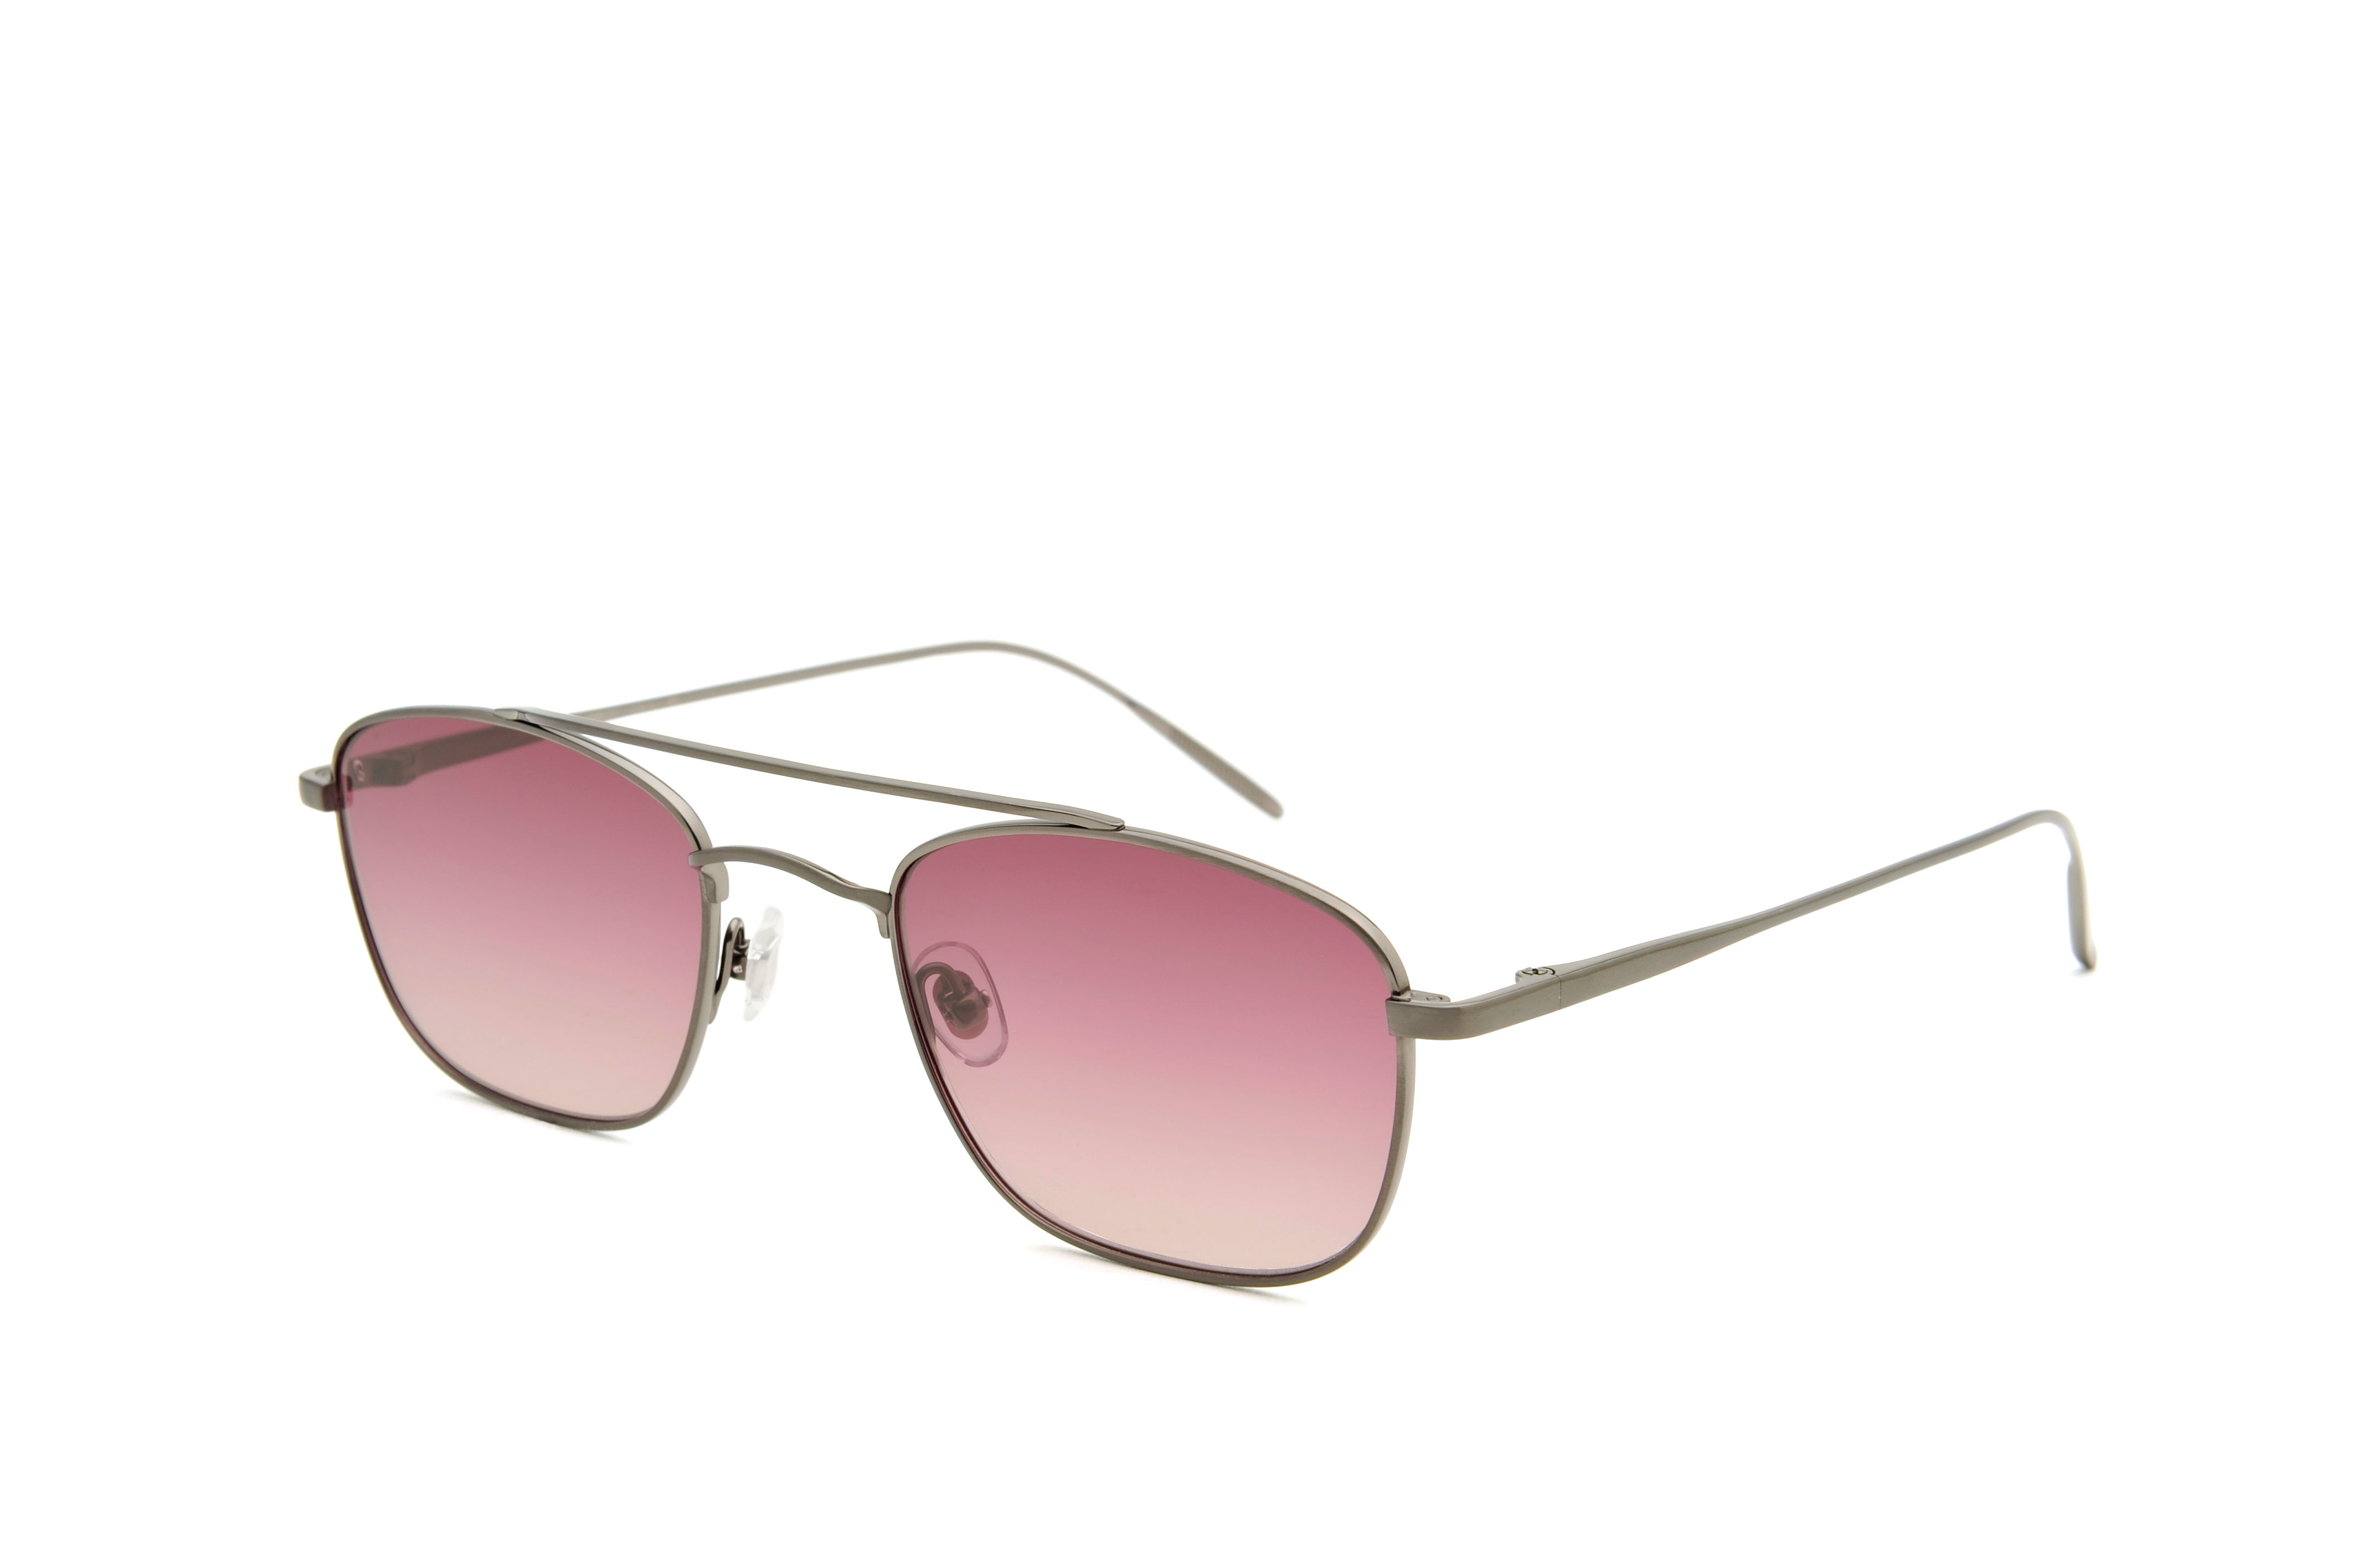 New York metal aviator gun sunglasses by GIGI Studios